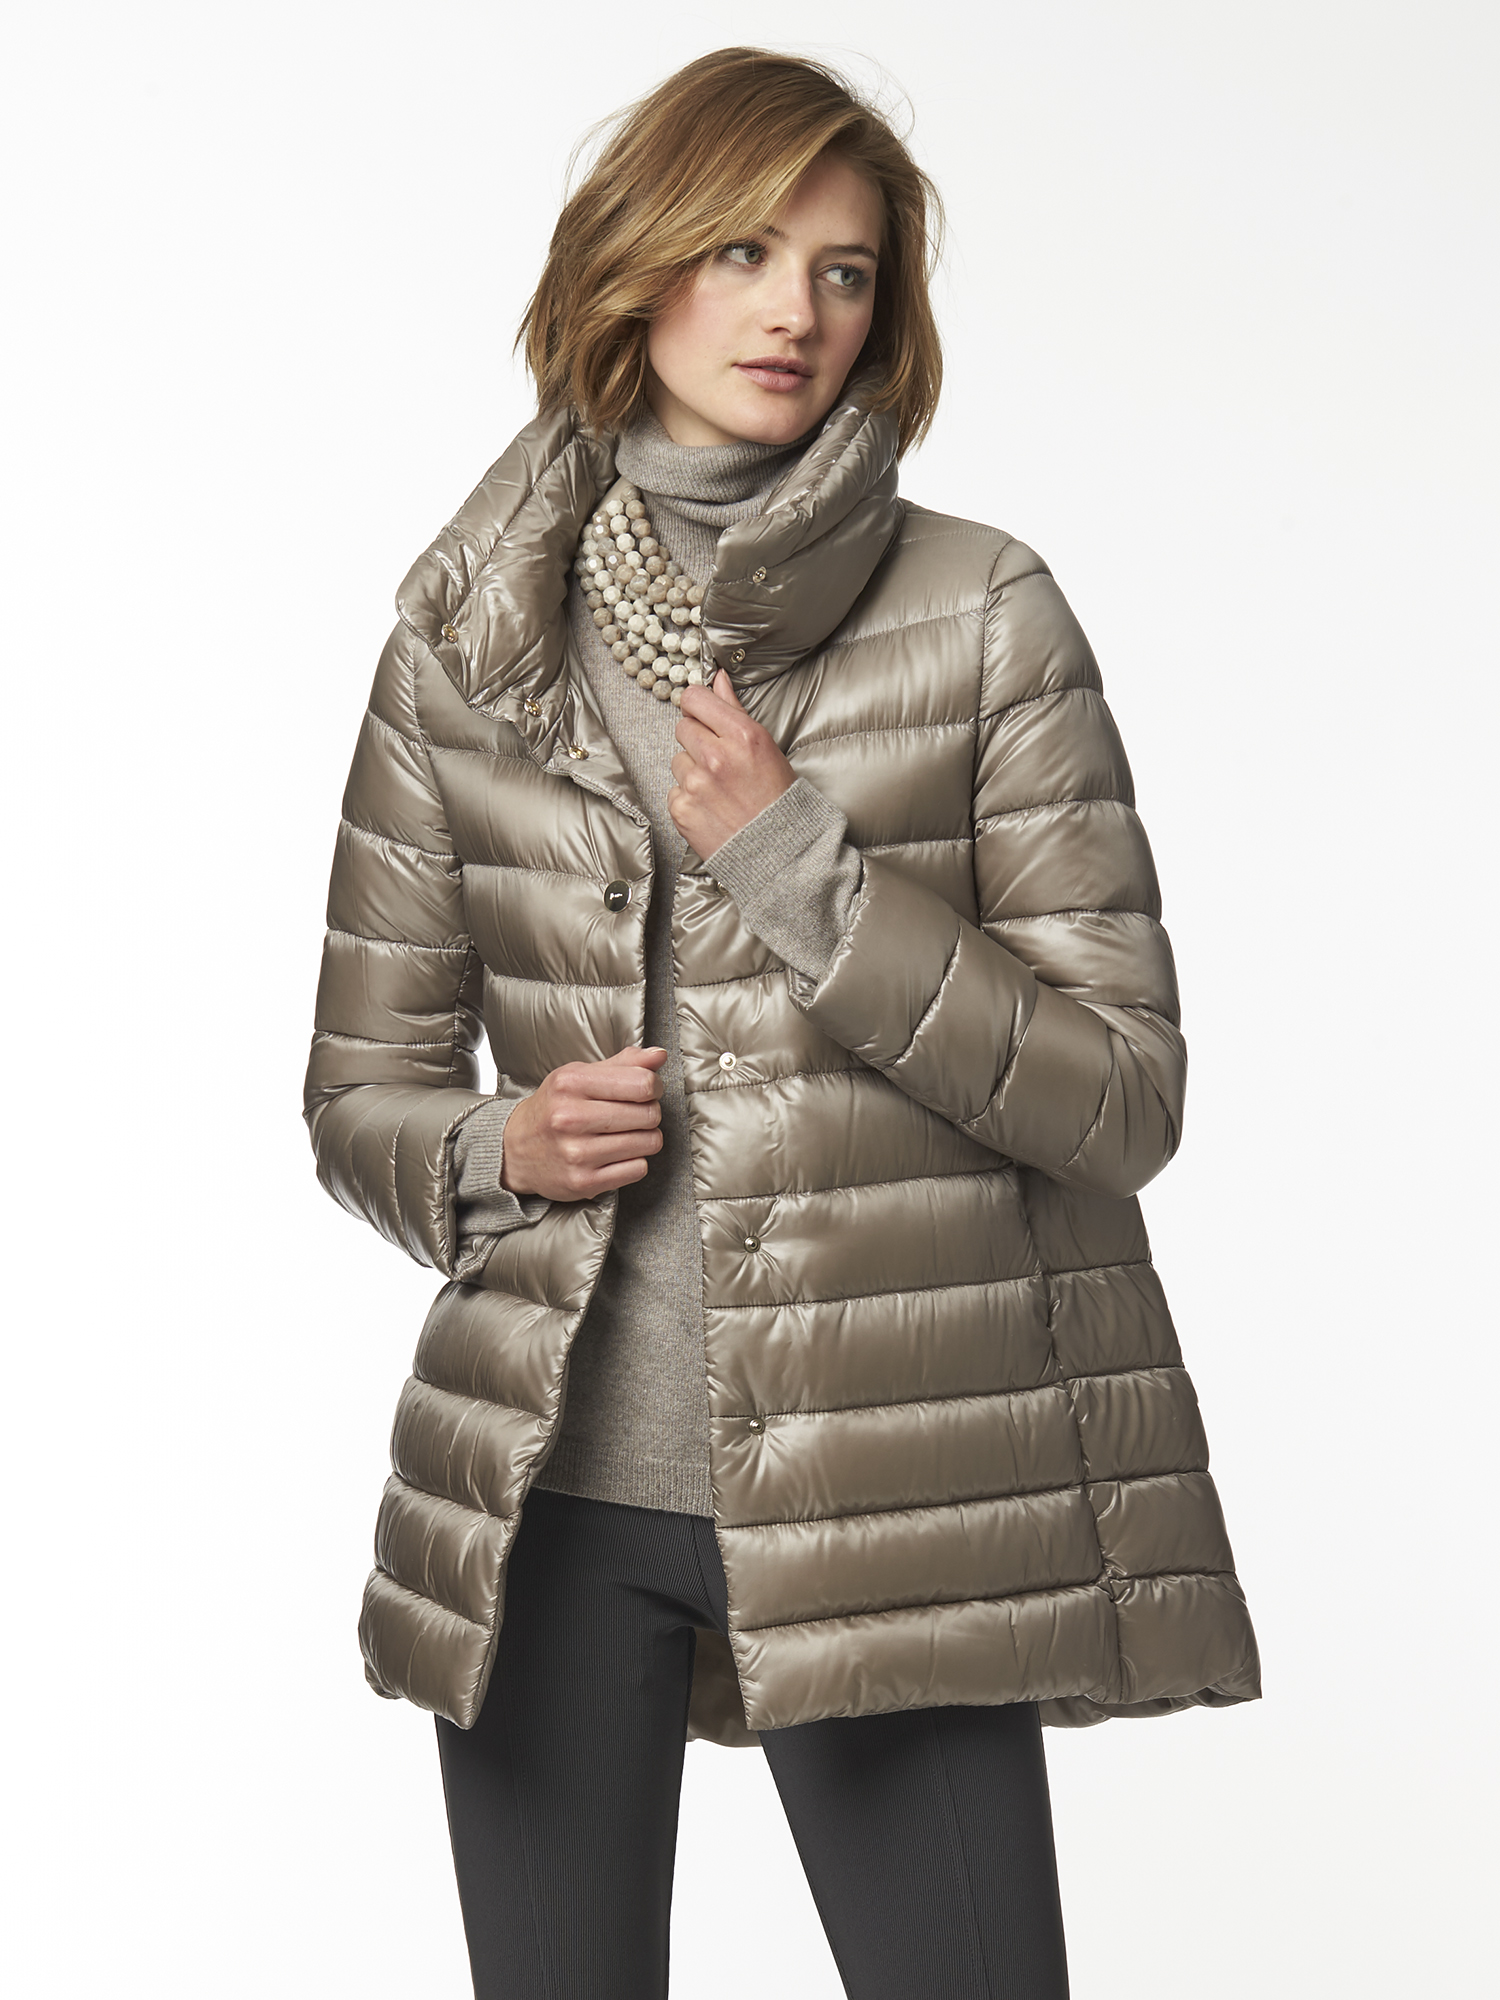 b30e7051633 Gorsuch Canada Goose Jackets For Girls And Women